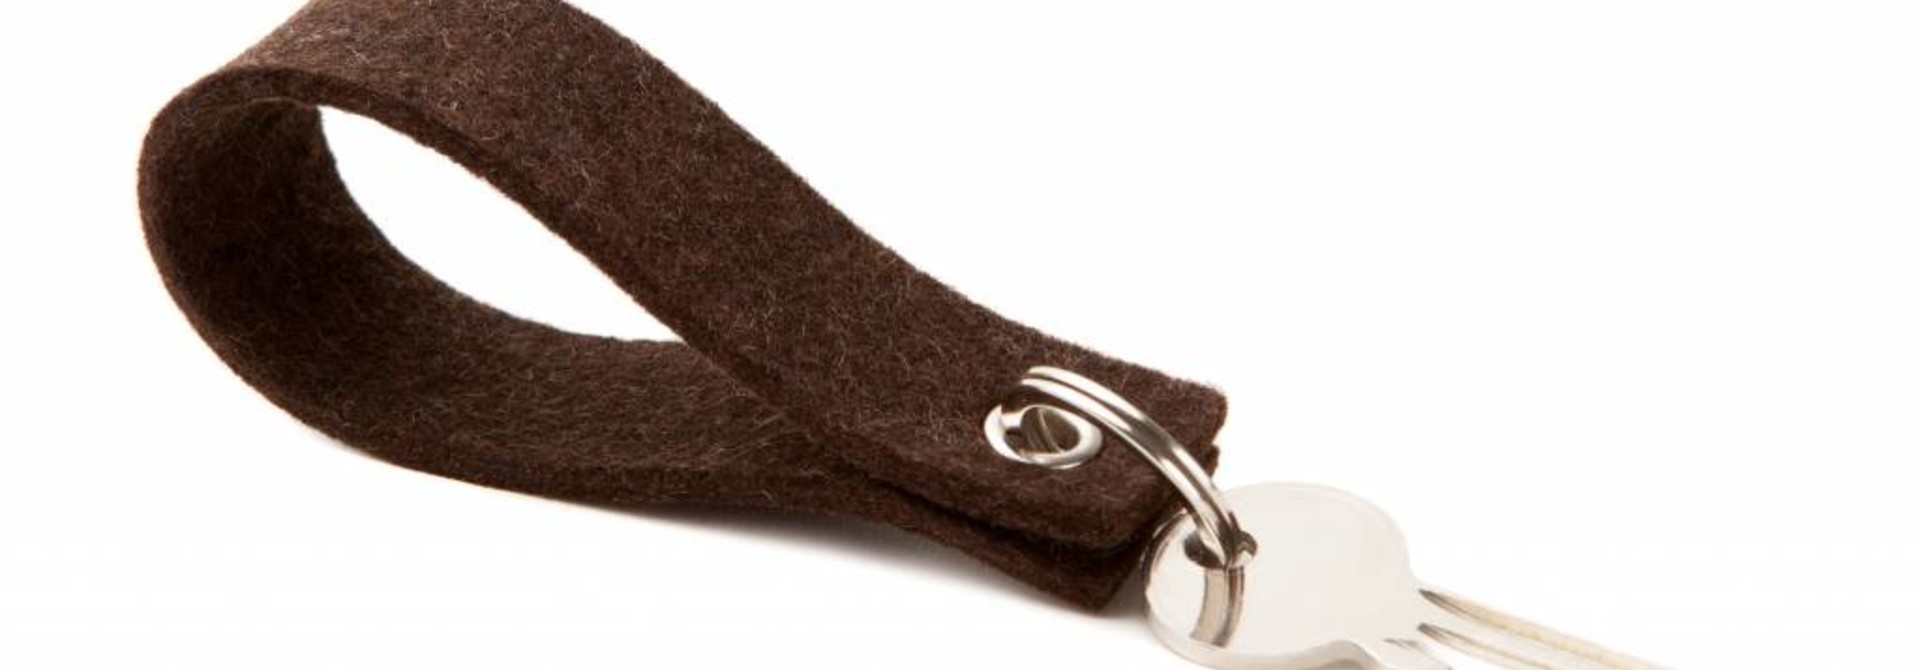 Keychain Truffle-Brown square